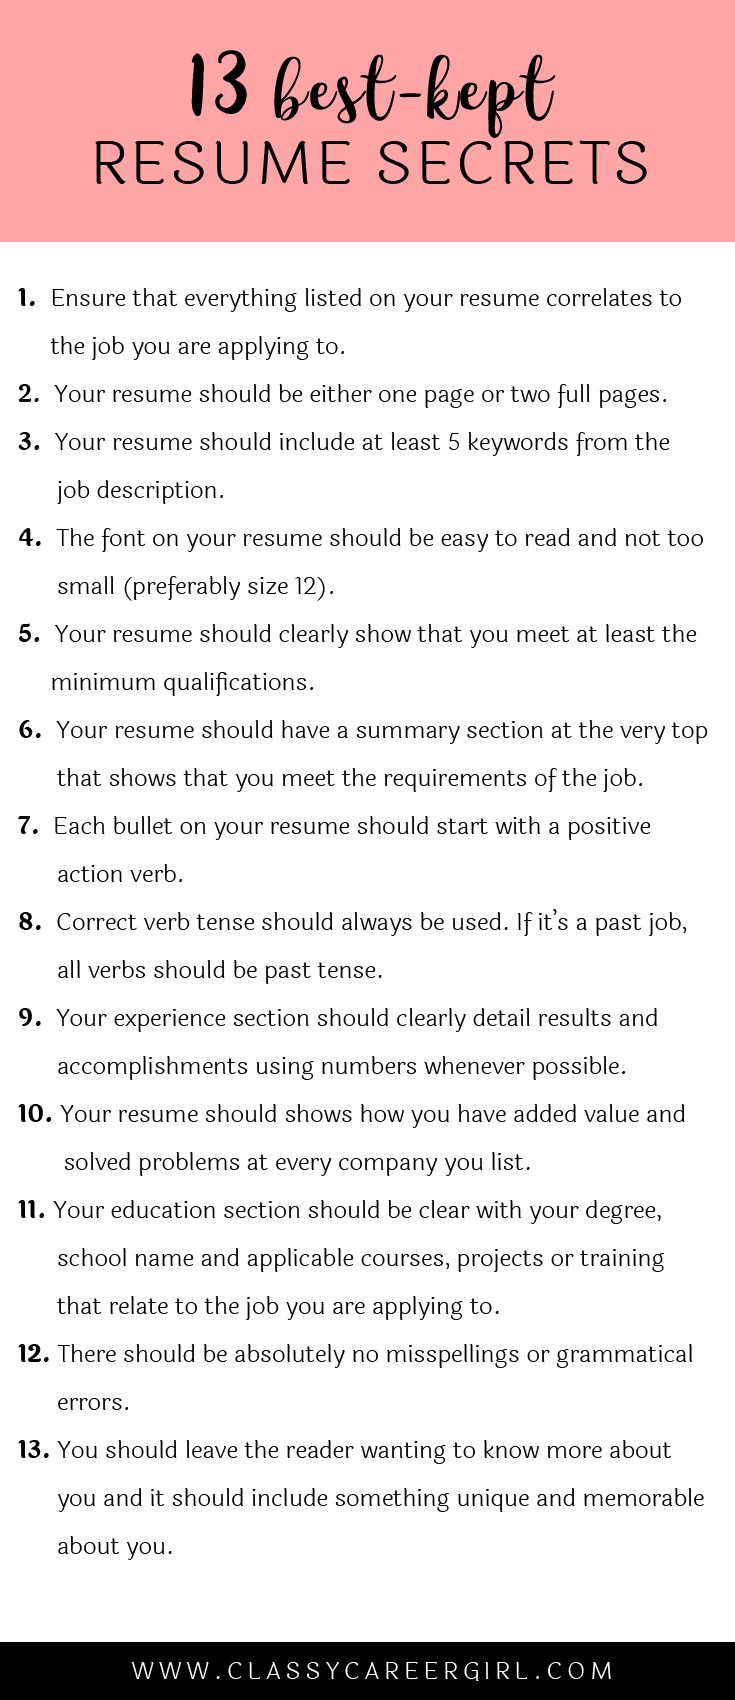 Opposenewapstandardsus  Winning  Ideas About Resume On Pinterest  Cv Format Resume Cv And  With Likable Some Hiring Managers Will Toss Your Resume Out If You Dont Know These  With Breathtaking Resume Graphic Design Also Actuary Resume In Addition Examples Of Skills On Resume And Office Skills For Resume As Well As Preparing A Resume Additionally Management Resumes From Pinterestcom With Opposenewapstandardsus  Likable  Ideas About Resume On Pinterest  Cv Format Resume Cv And  With Breathtaking Some Hiring Managers Will Toss Your Resume Out If You Dont Know These  And Winning Resume Graphic Design Also Actuary Resume In Addition Examples Of Skills On Resume From Pinterestcom